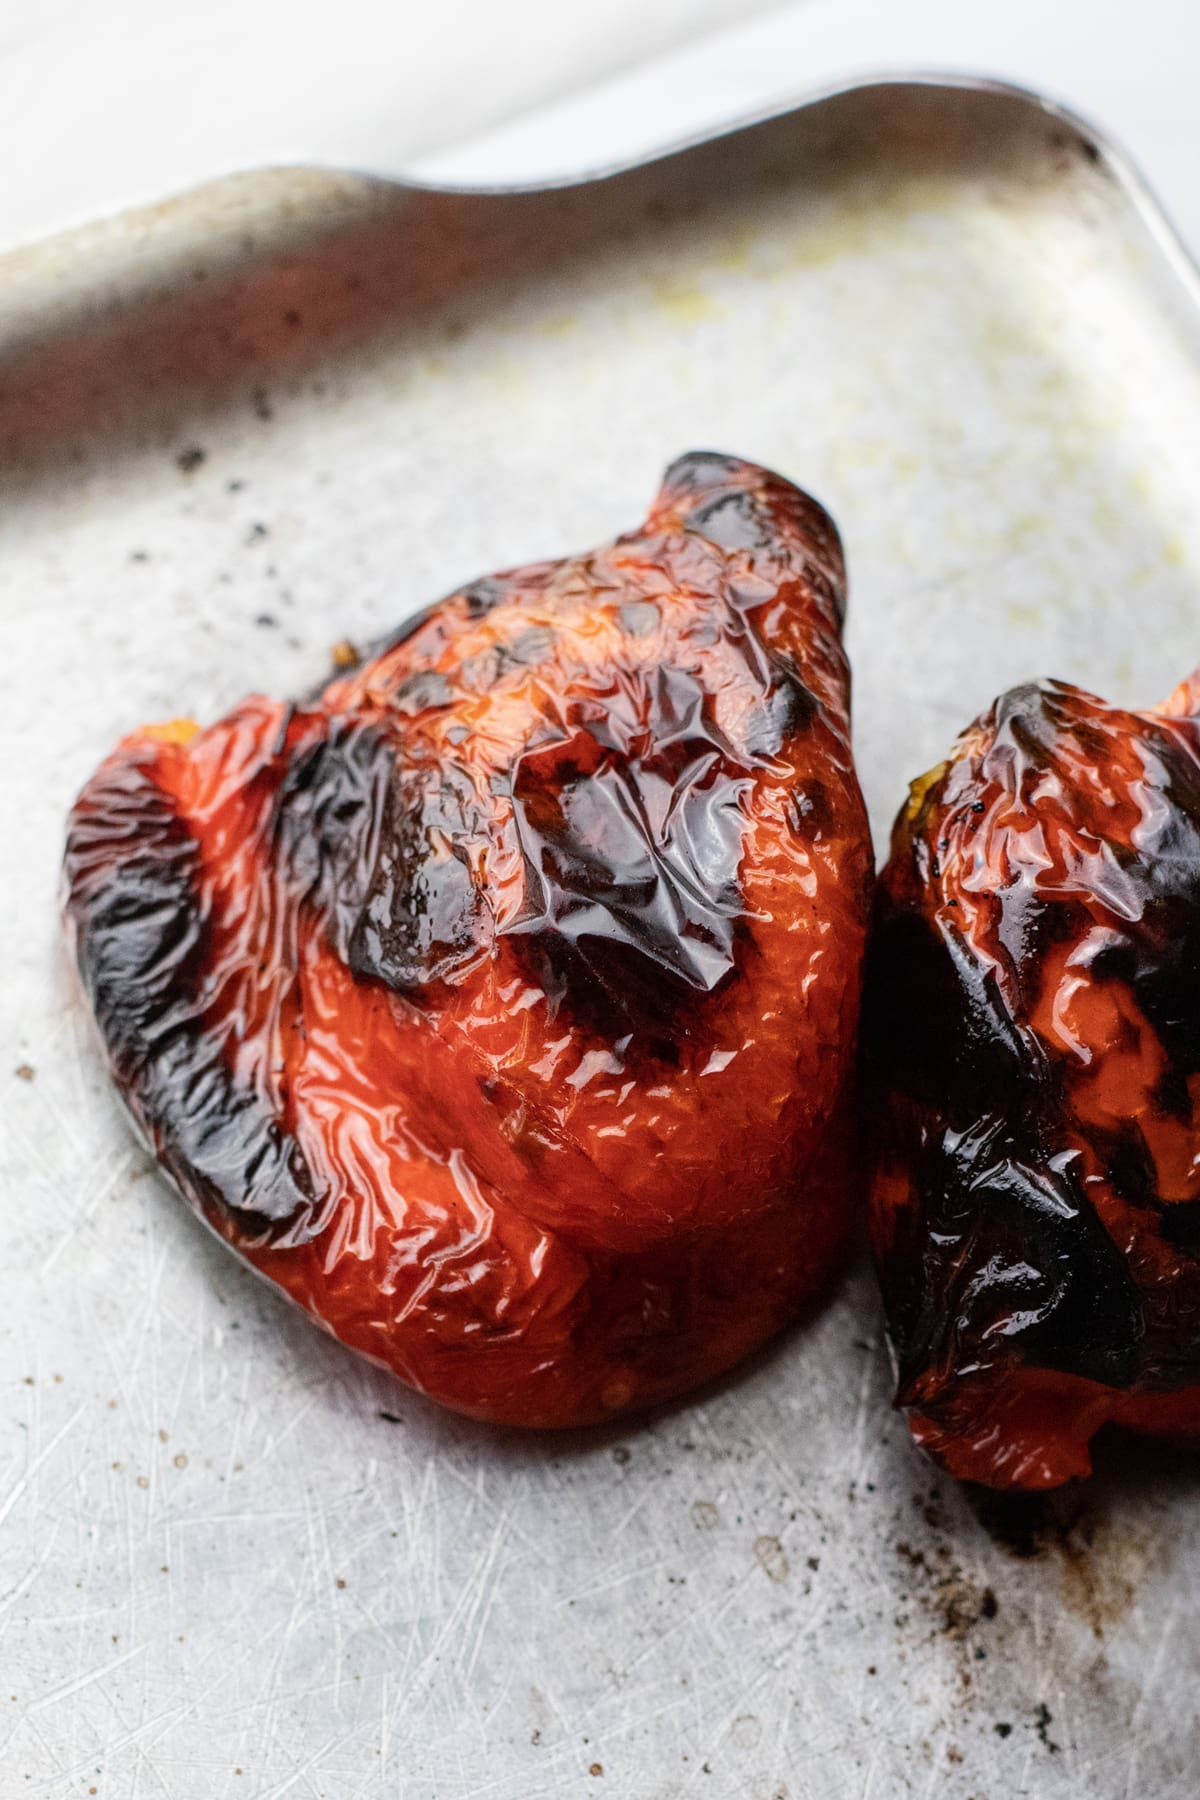 Charred red pepper on stainless steel pan.